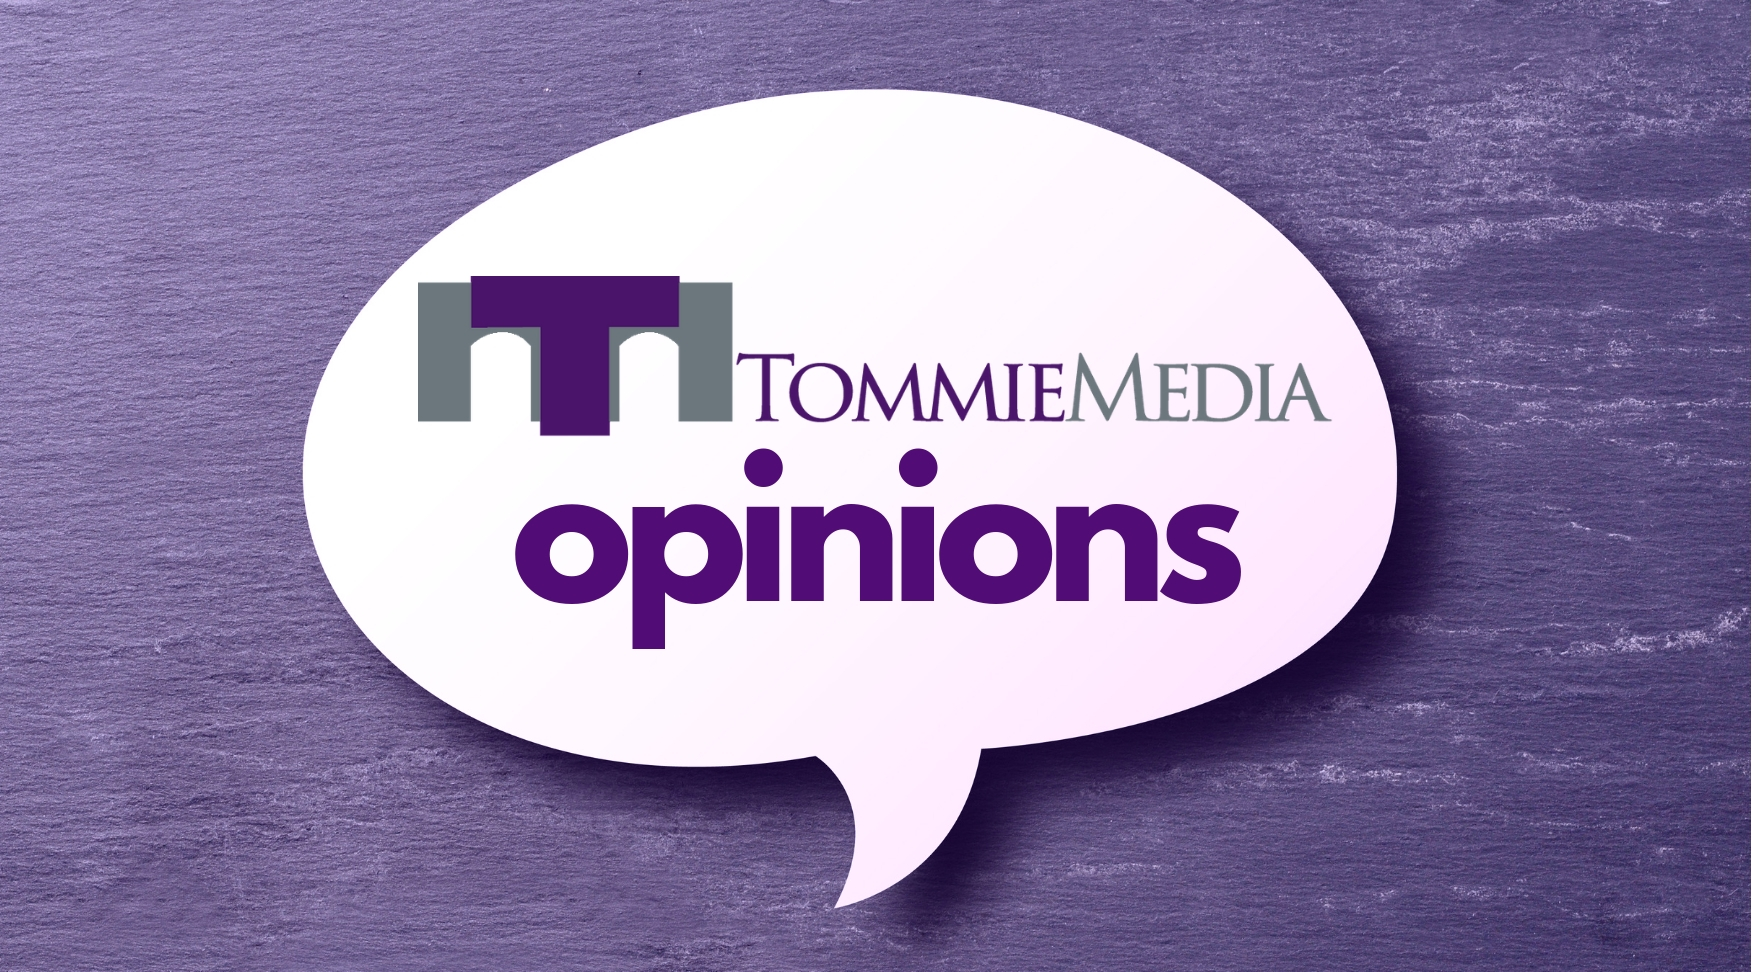 TommieMedia – Campus, local and world news reported daily by